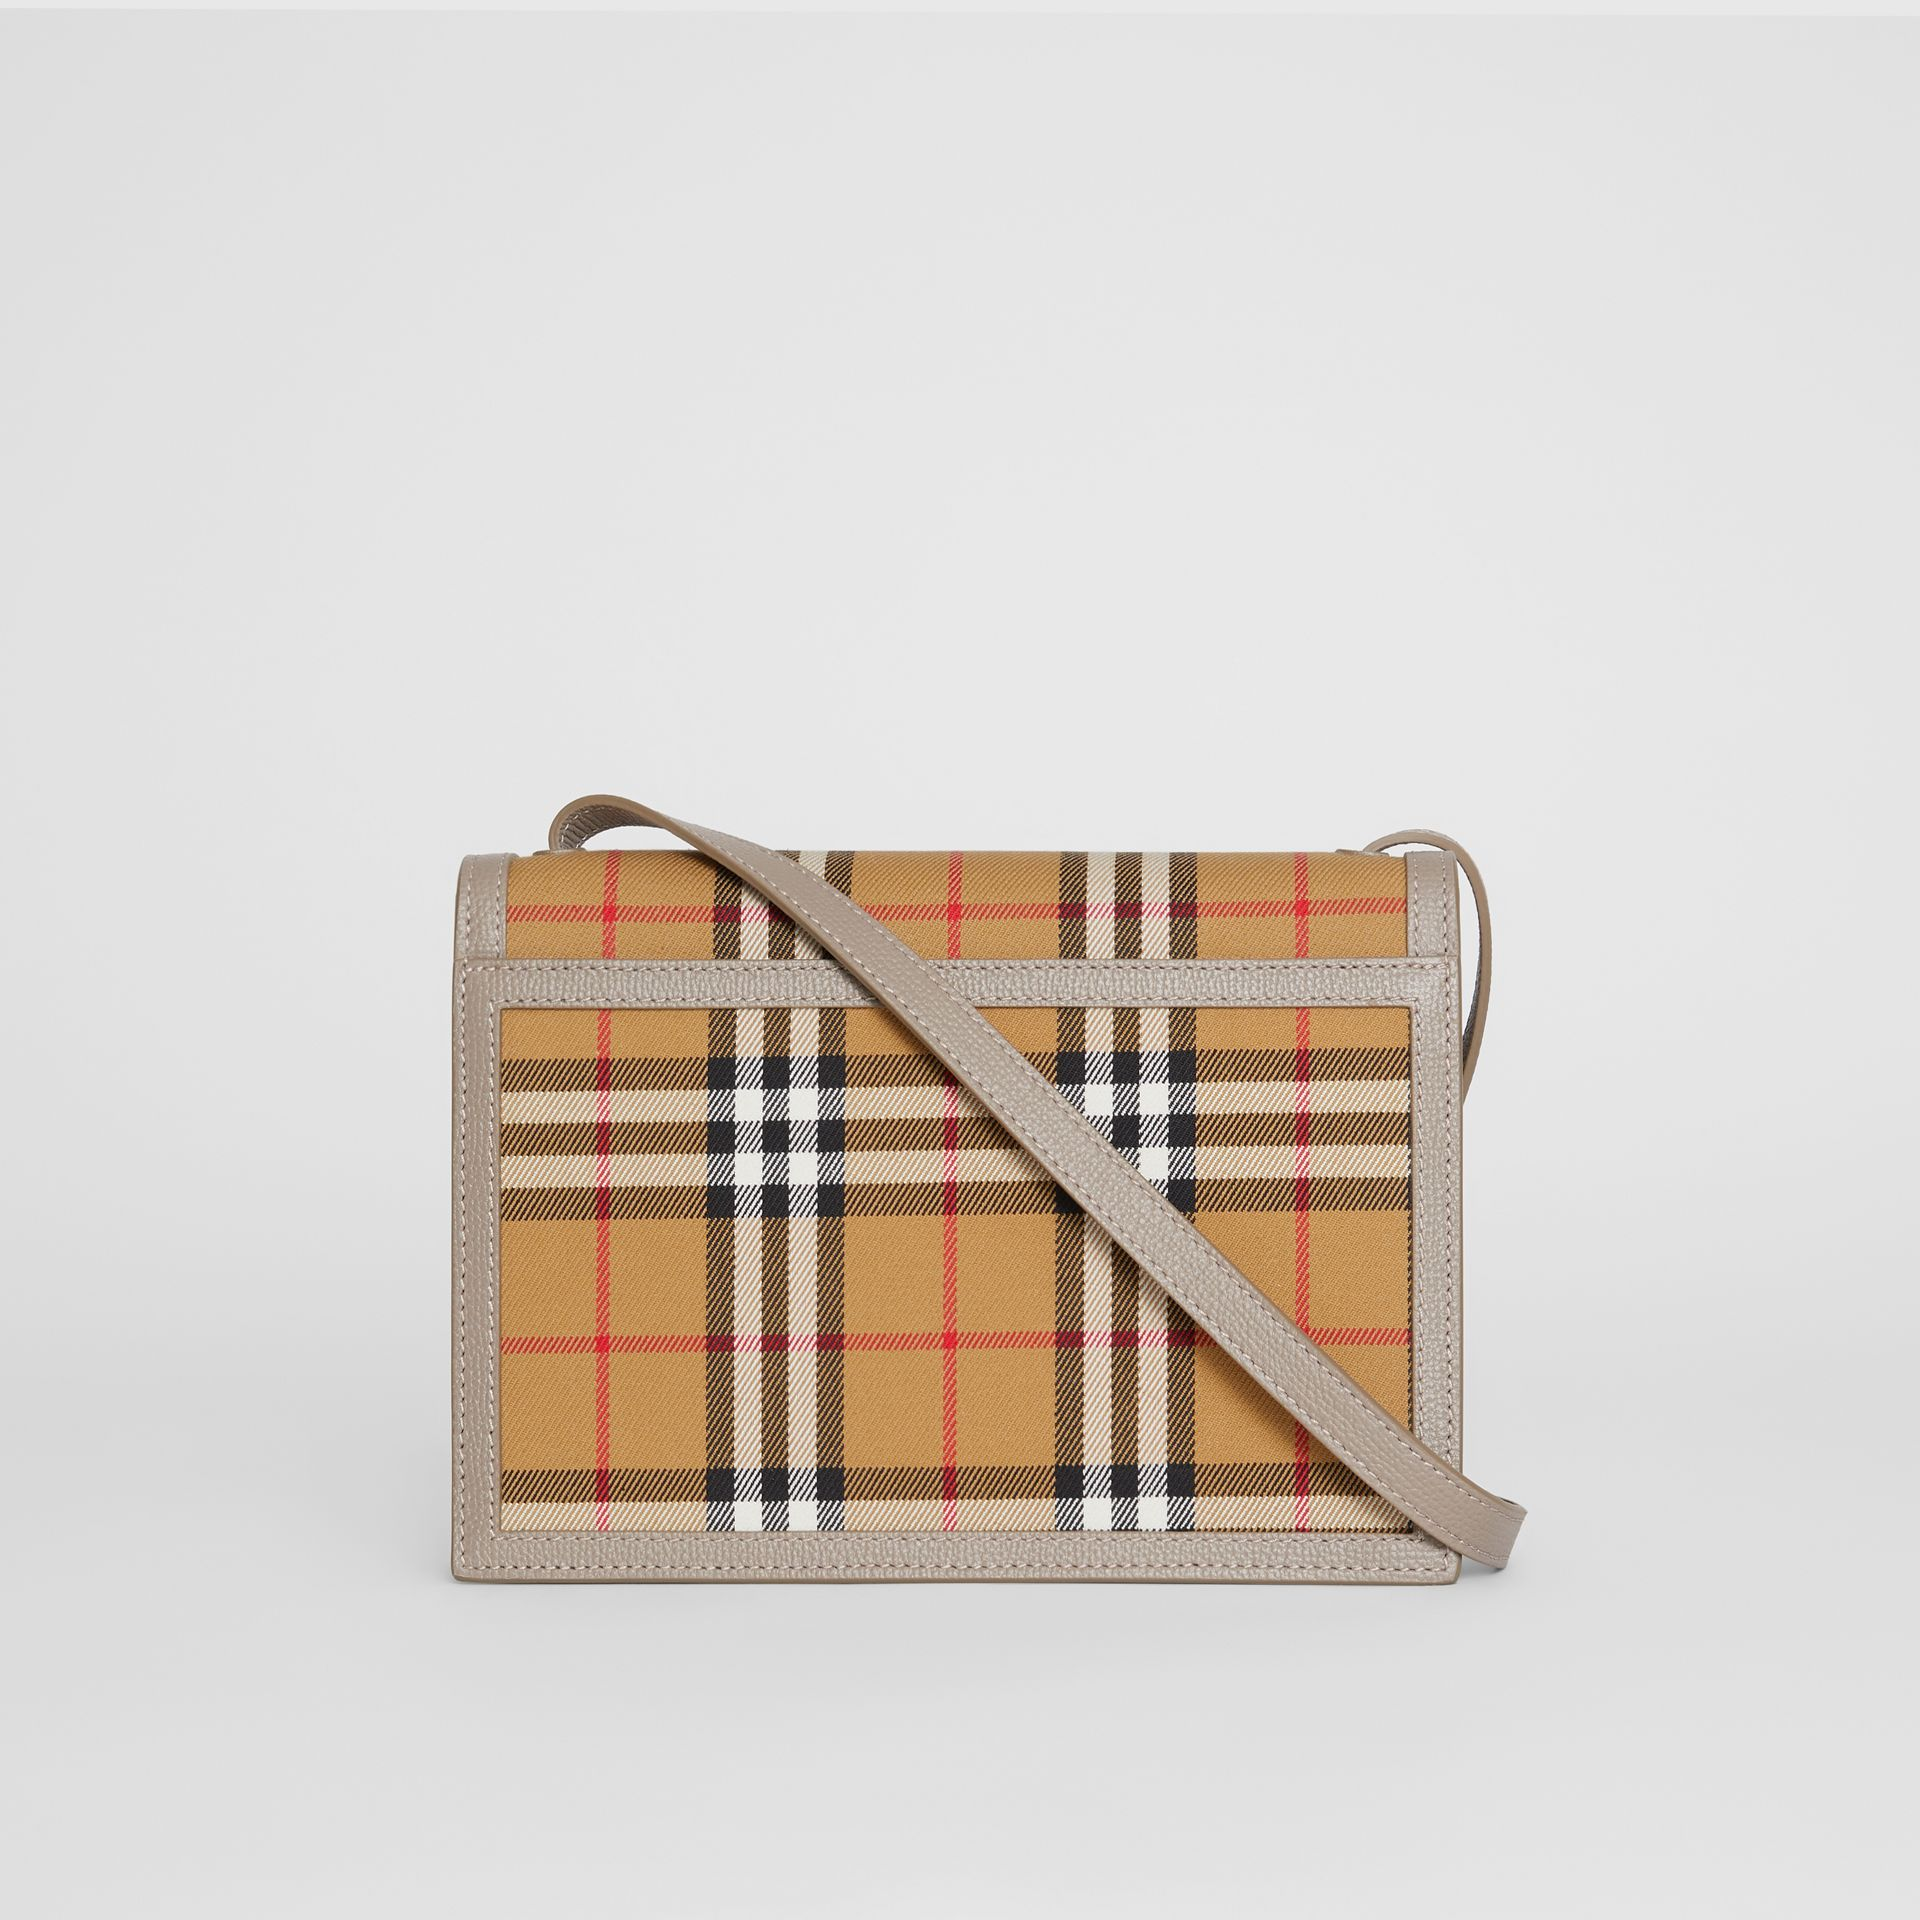 Small Vintage Check and Leather Crossbody Bag in Taupe Brown - Women | Burberry Australia - gallery image 7